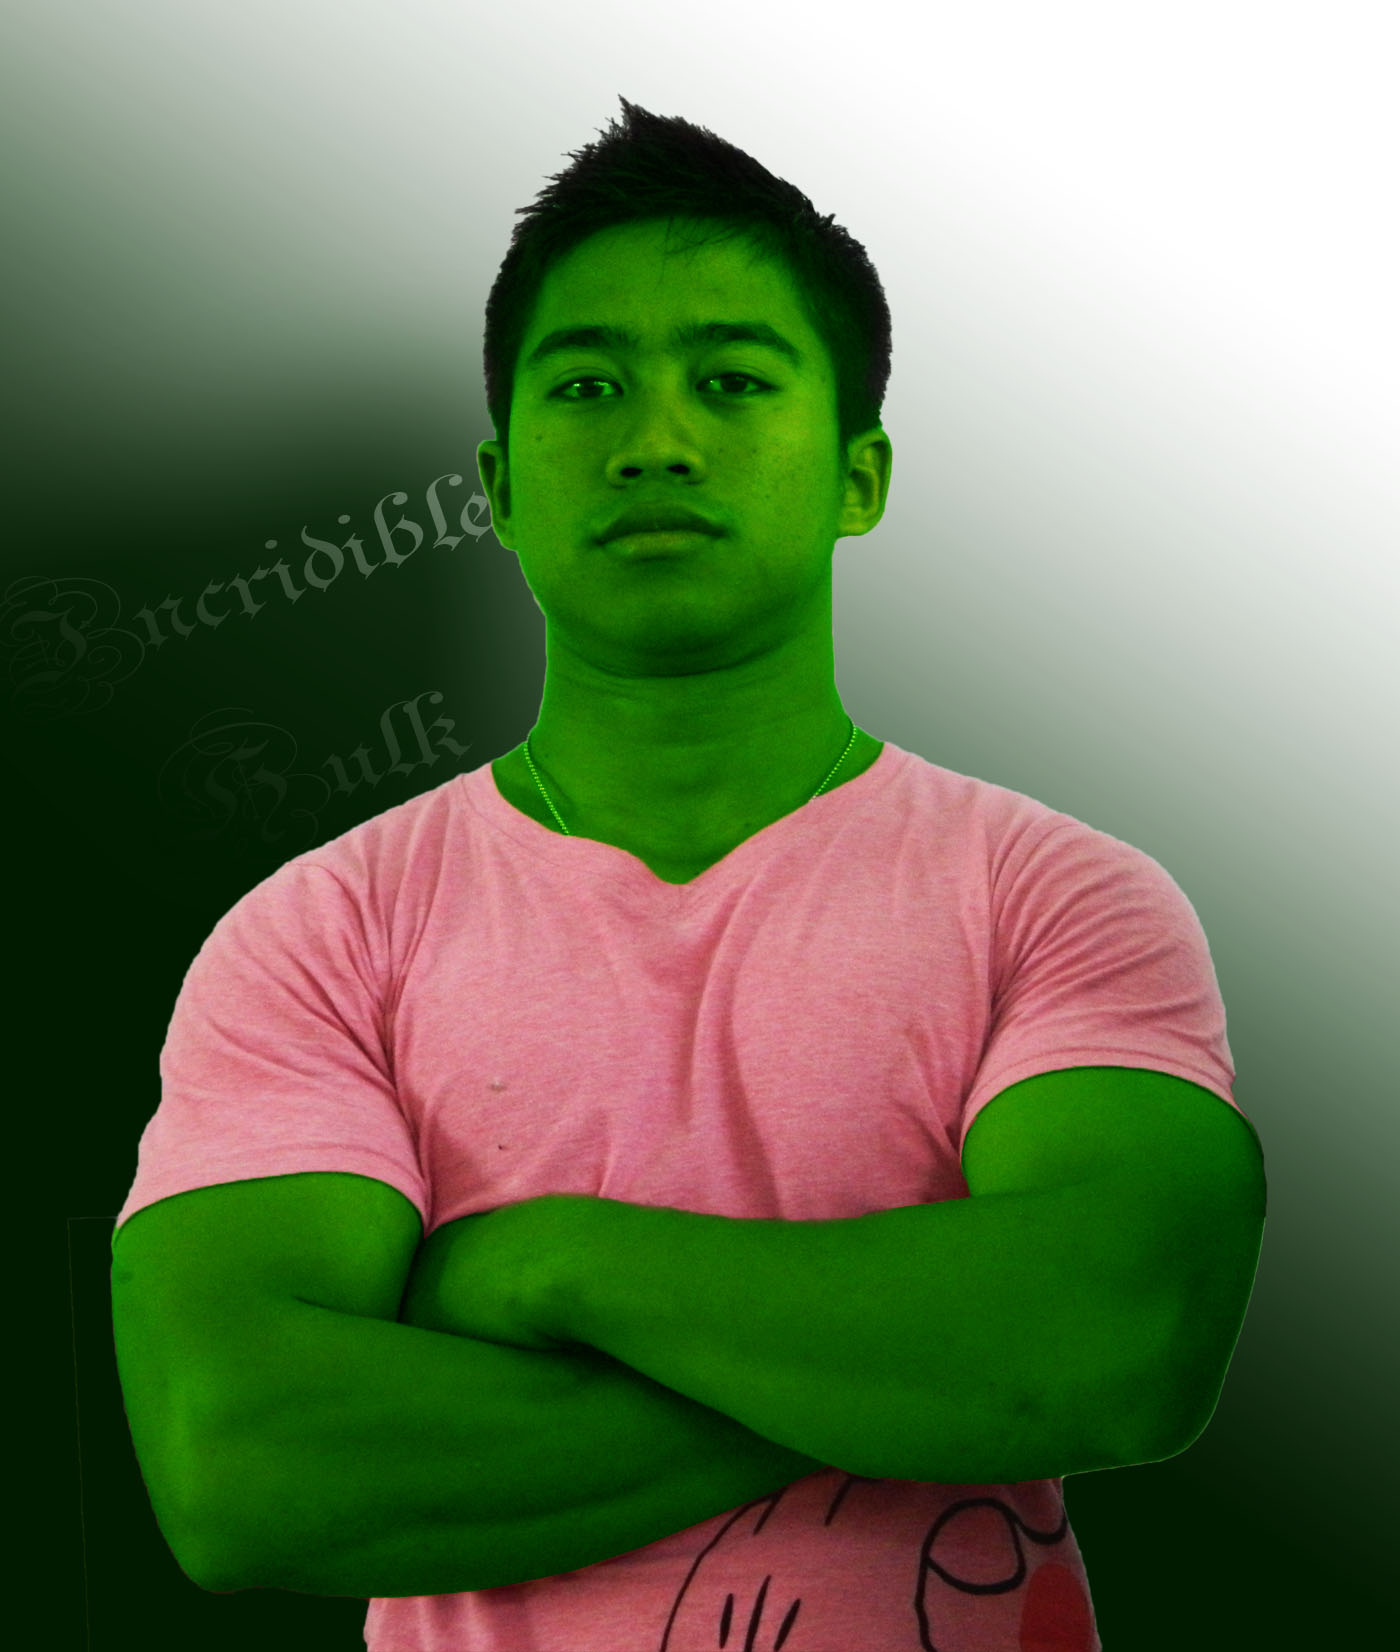 TUTORIAL PHOTOSHOP MANIPULASI THE HULK  Kelas Desain